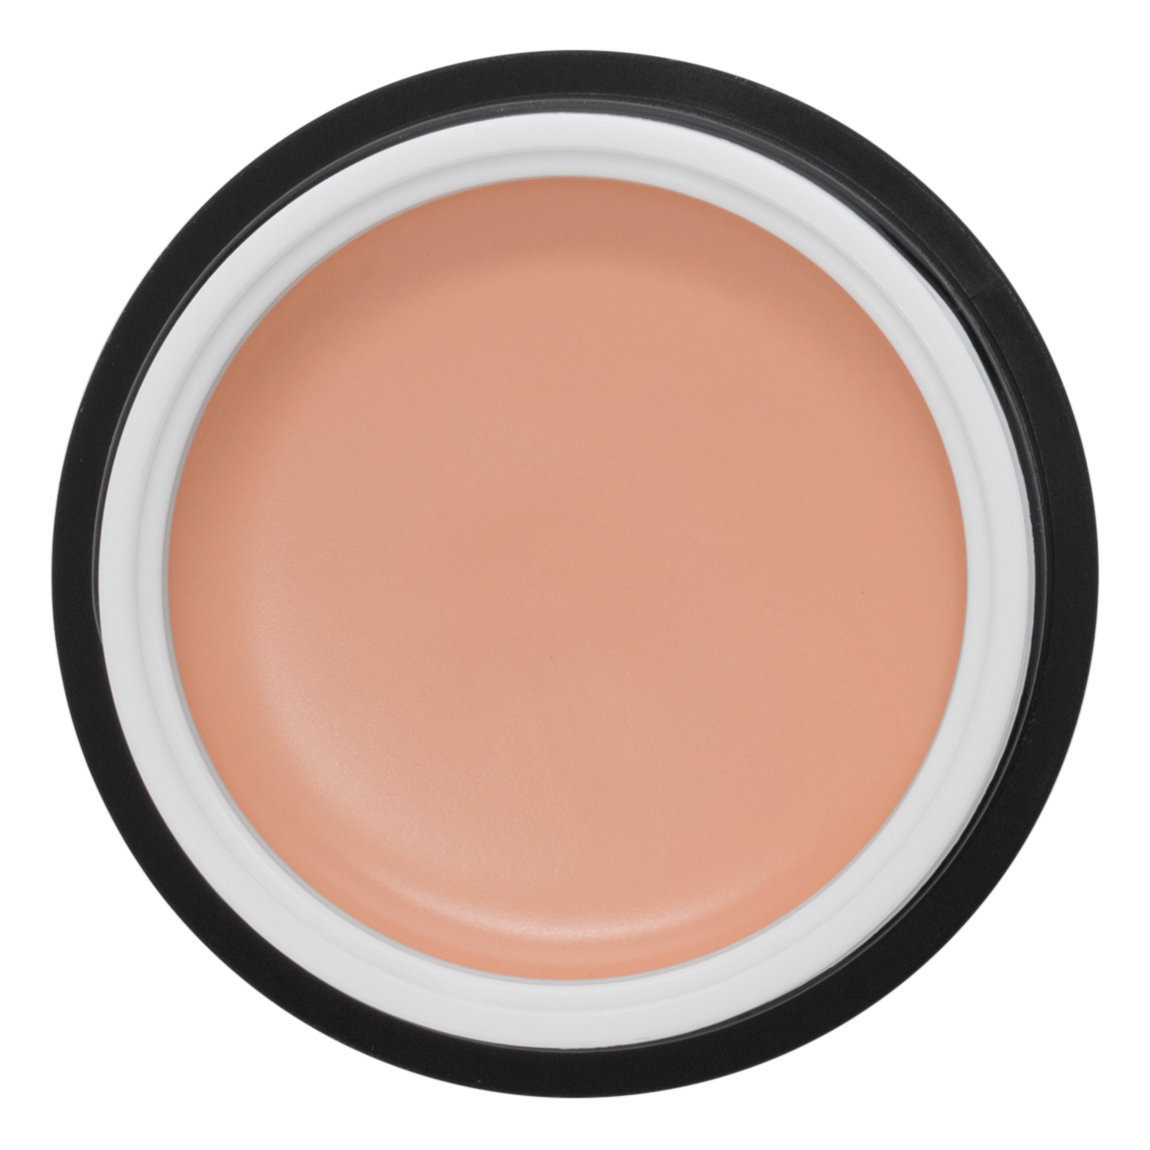 IT Cosmetics  Bye Bye Under Eye Concealing Pot Light alternative view 1.